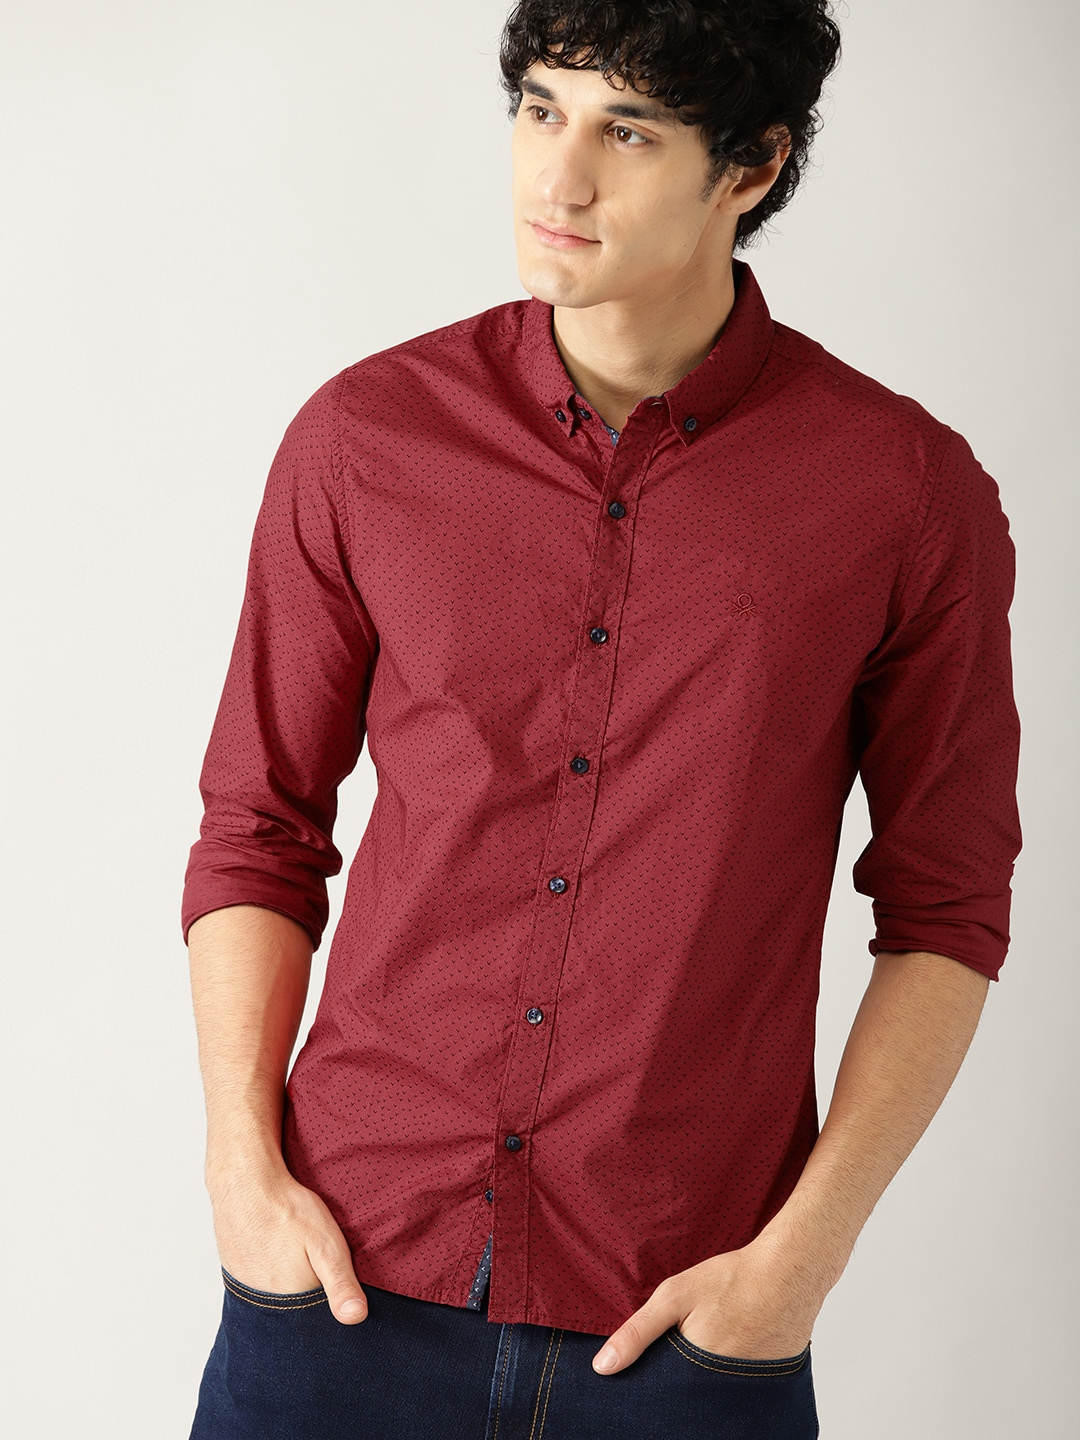 32f2c175800f What Color Shirt Goes With Red Jeans - DREAMWORKS